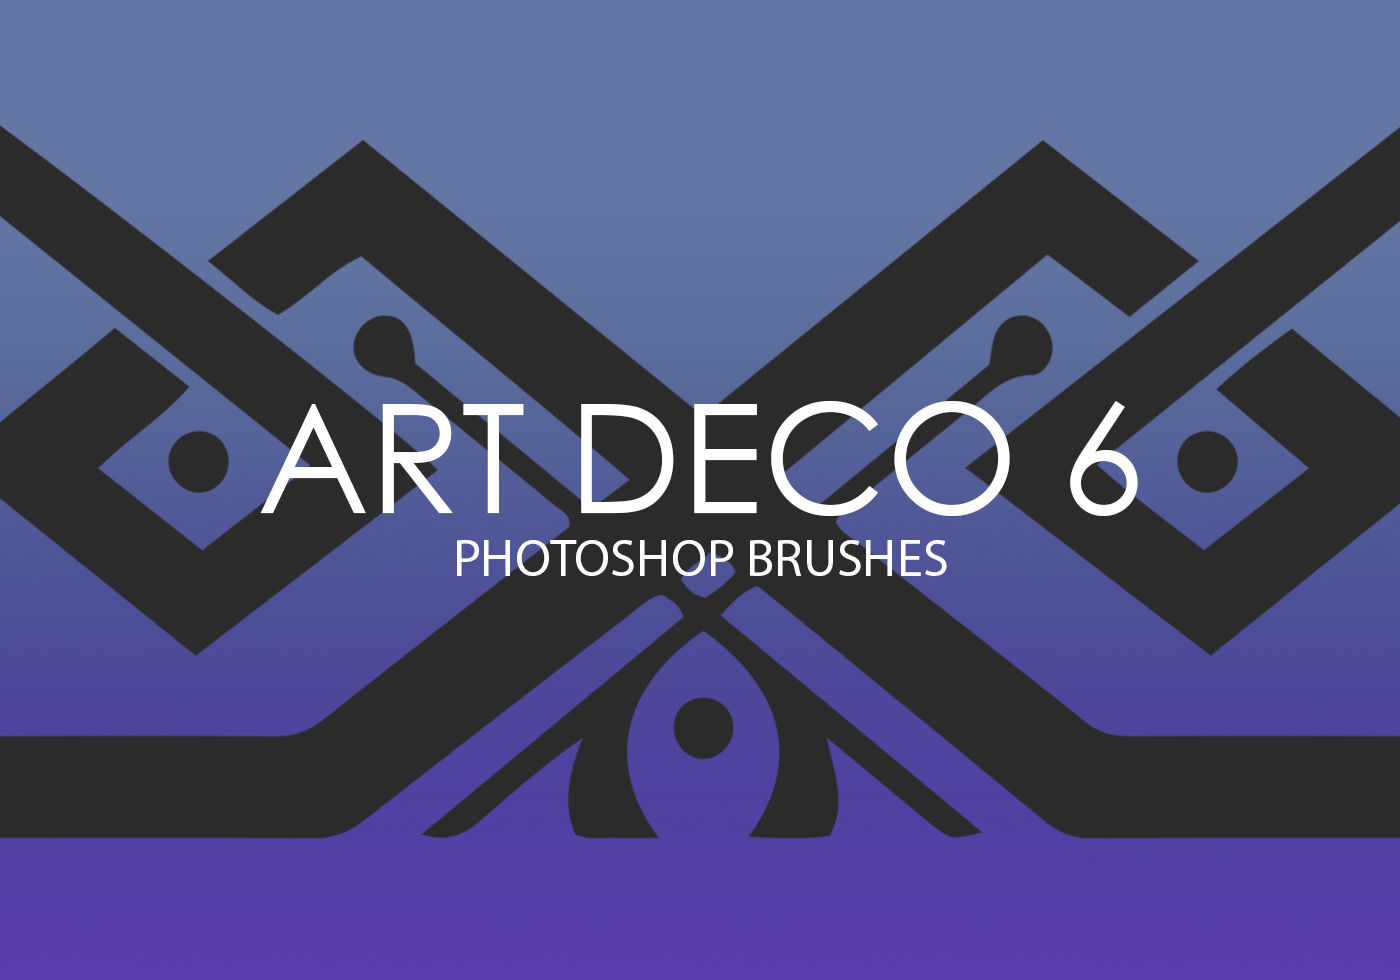 Art Deco Photoshop Brushes 6 Free Photoshop Brushes At